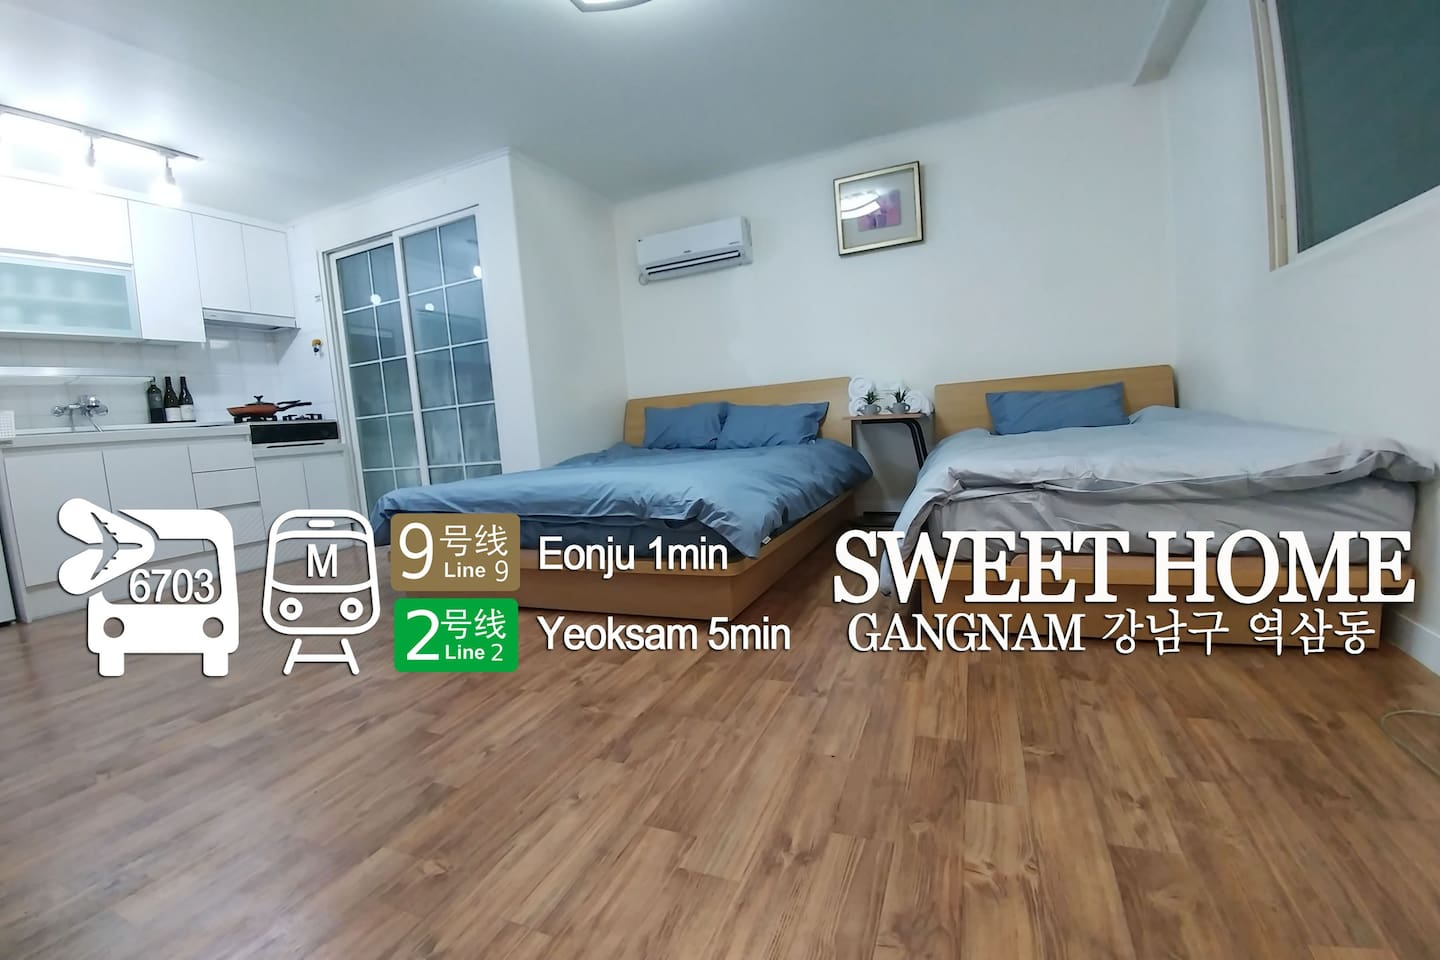 Cozy, Convenienct, Clean~! Super Close to Gangname area and easy to come from Airport (ICN, GMP airport) by subway & limobus.  two subway stations are nearby. (line 9 & line 2)